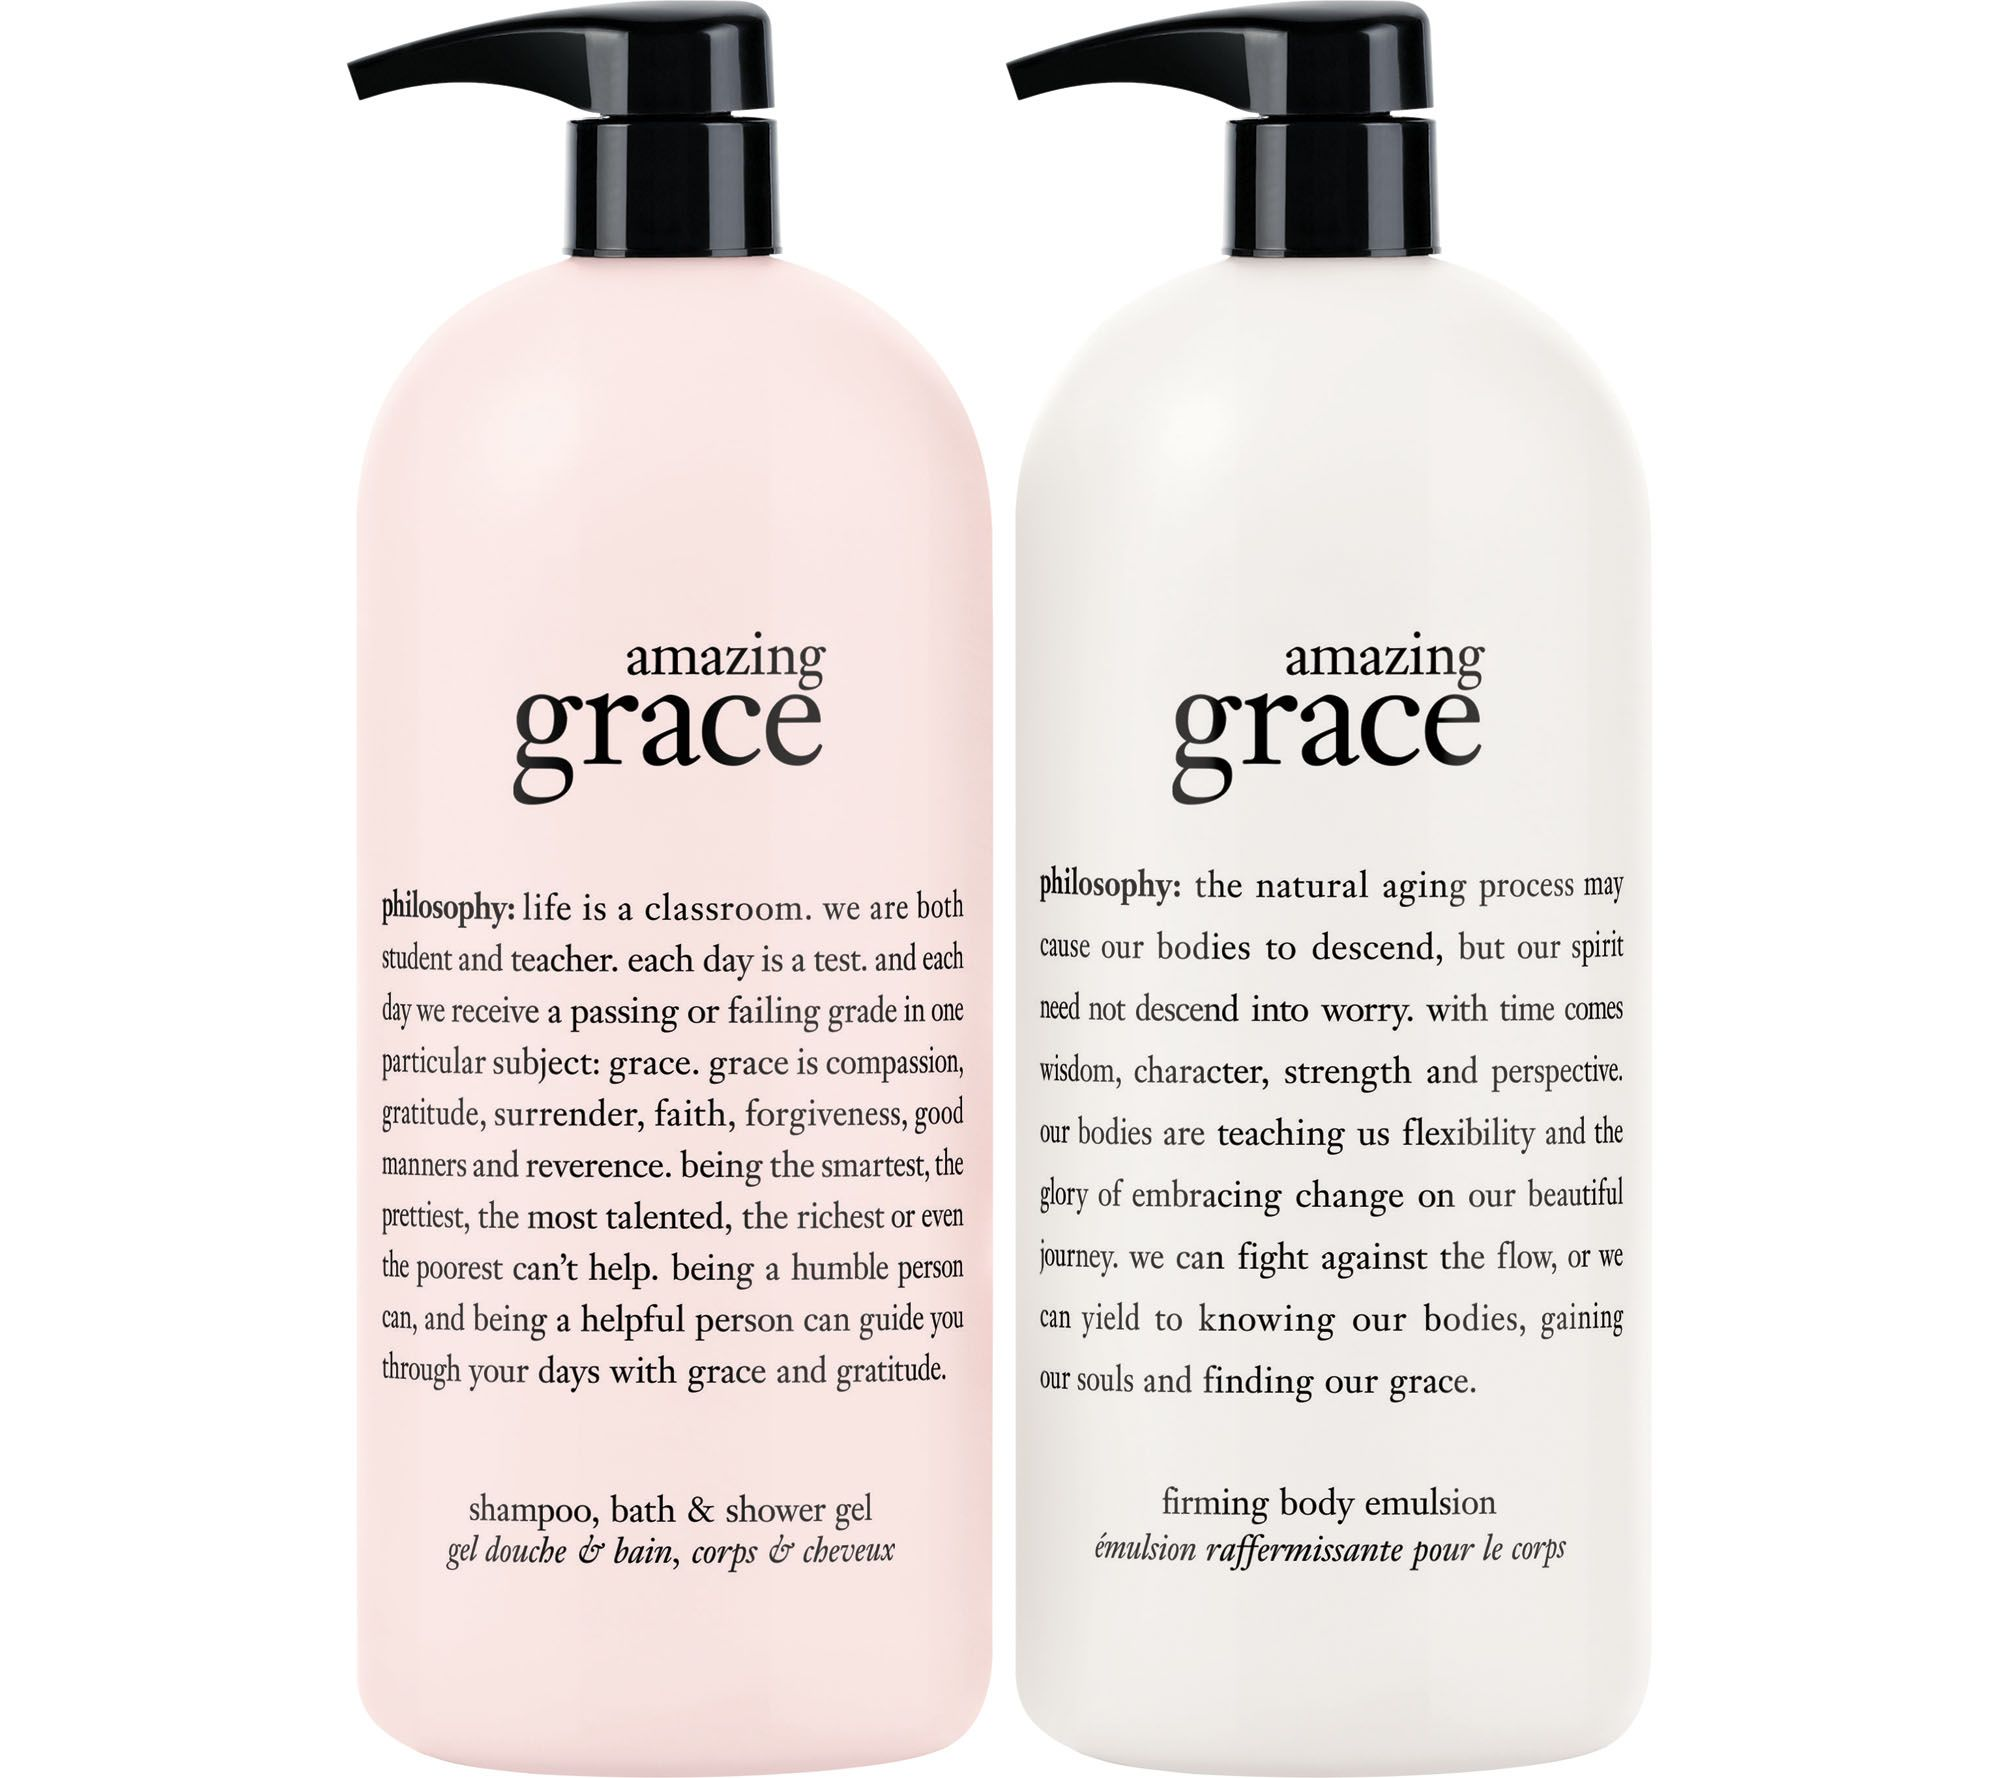 16% off a philosophy 3-in-1 gel & body lotion duo